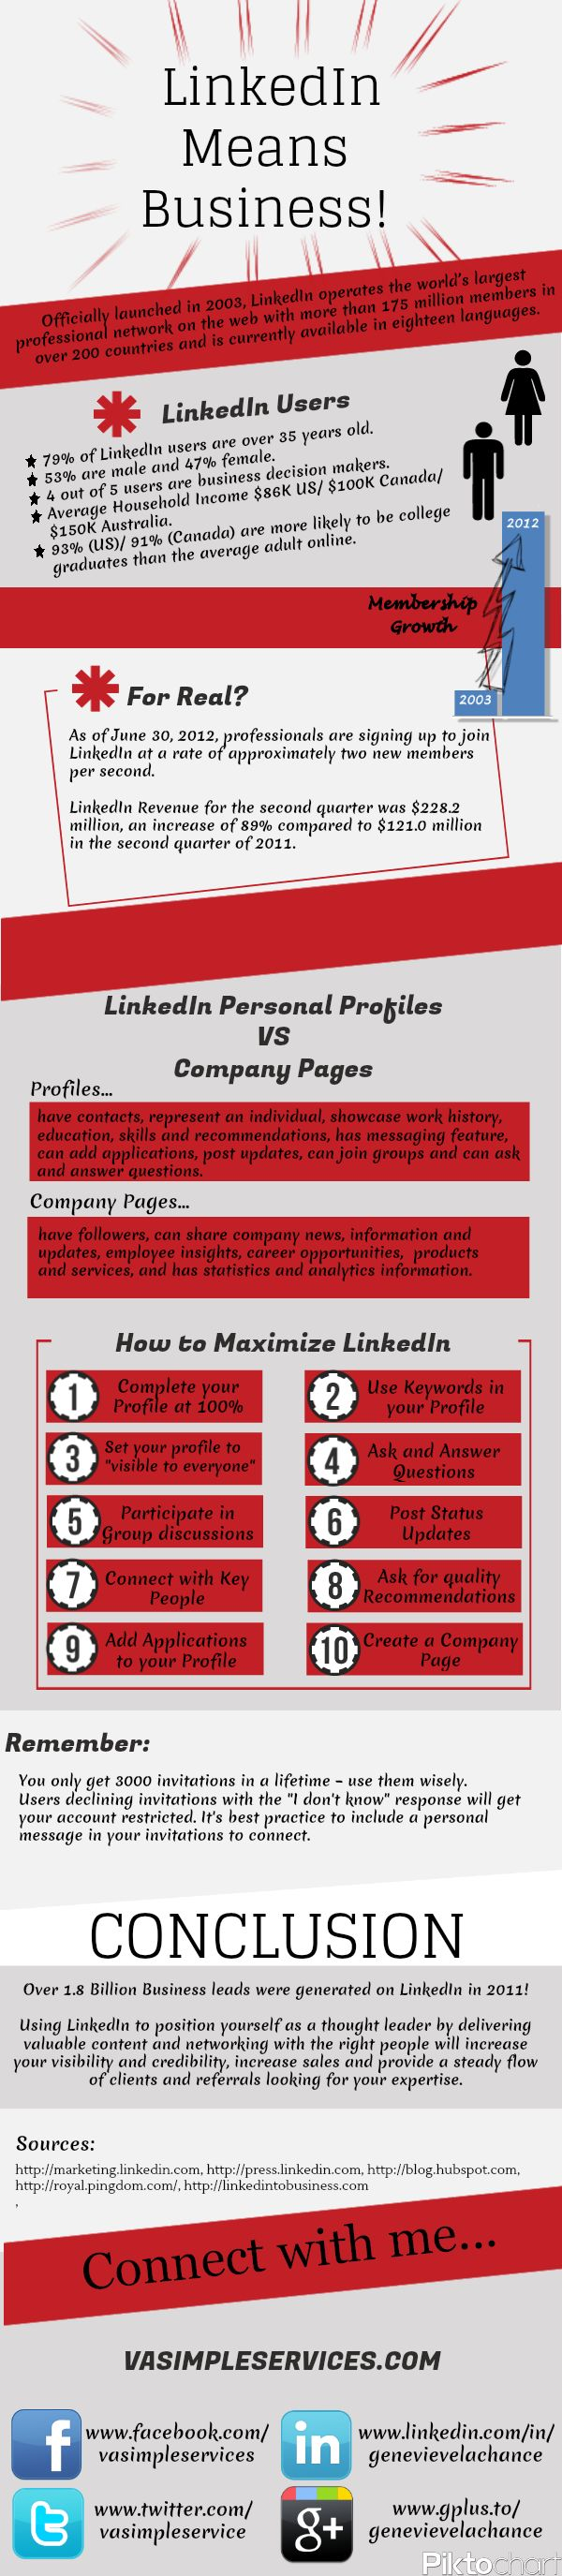 "LinkedIn Means Business - love the section for ""How to Maximize LinkedIn"" and the reminder about LI invitations. #Infographic"